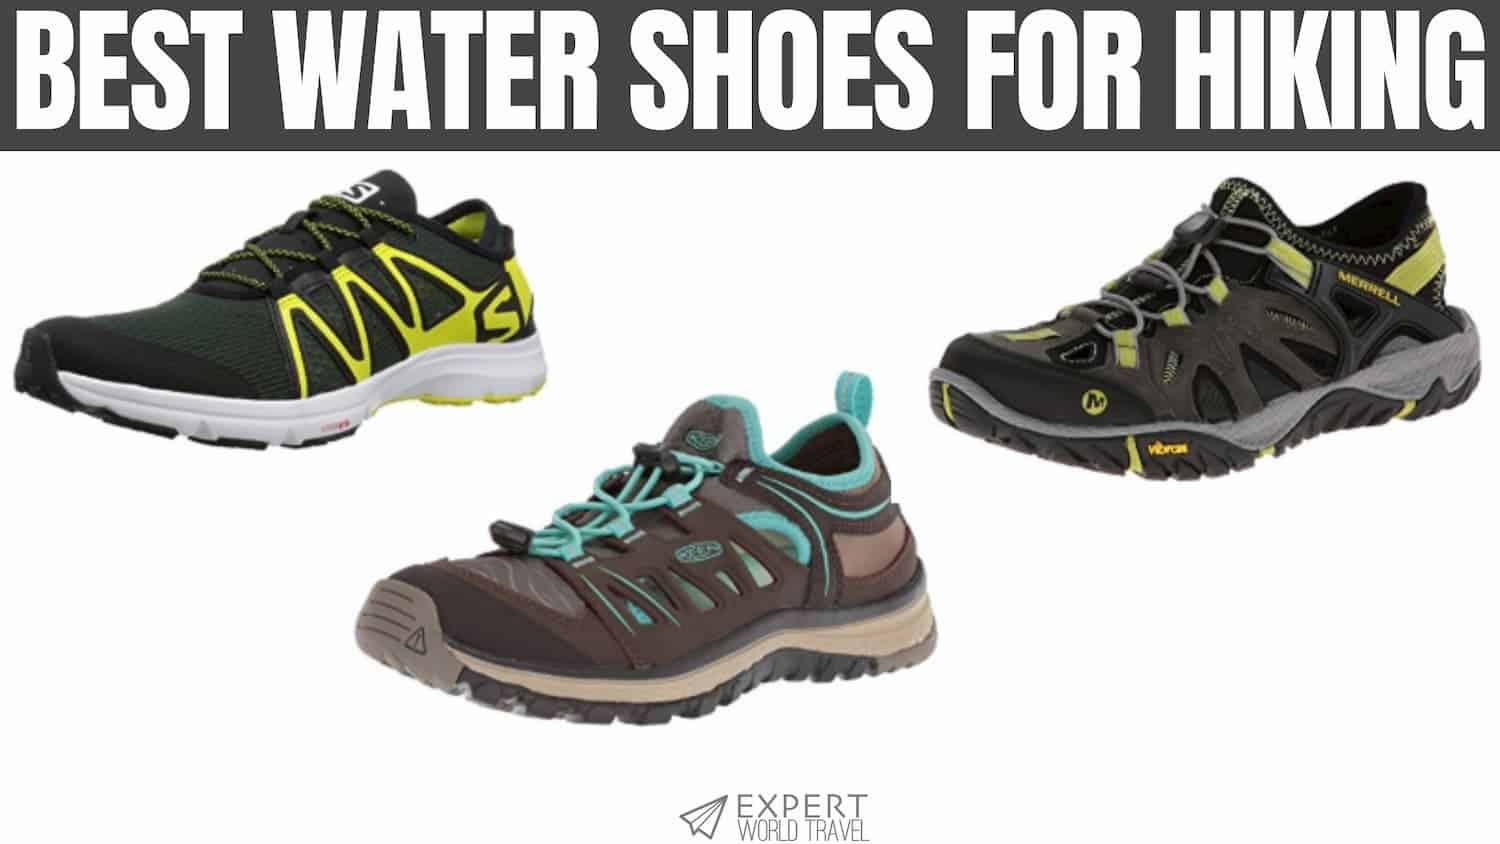 Best Water Shoes For Hiking in 2020